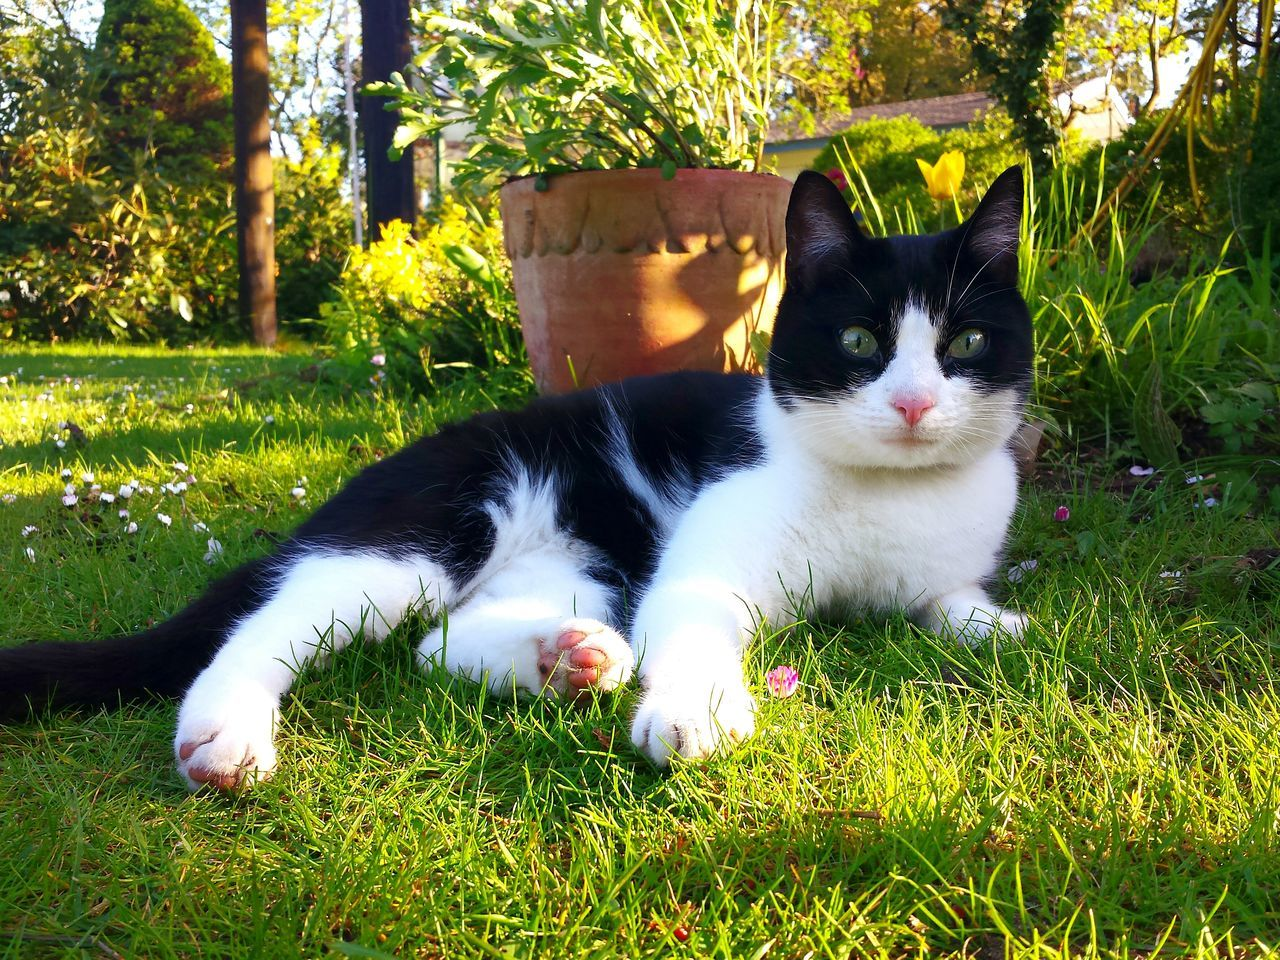 Felix The Cat called Benji. Ladyphotographerofthemonth The EyeEm Collection Cat Laying On Grass Light And Shadow Male Cat Pretty Cat Animal Portrait The Essence Of Summer Cats Of EyeEm Pets Cat Lovers Sunkissed Black And White Cat Cat Paw Cat In Garden Cat Eyes Cat Nose Loving Cat Gorgeous Combination Laying Cat In Grass With Daisies Relaxed Cat Relaxed And So Comfy Beautiful Composition Pink Daisy